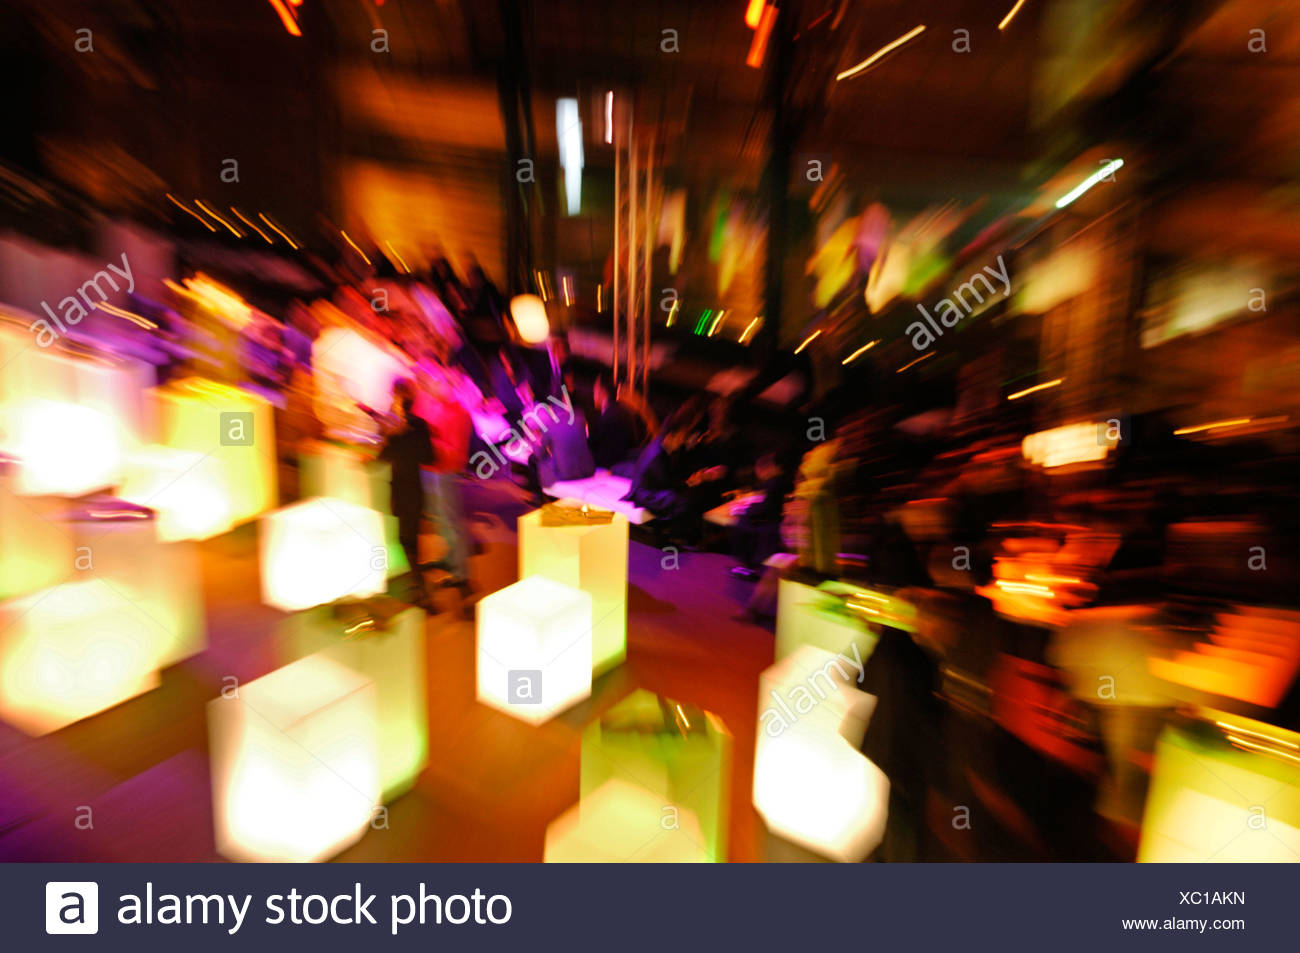 Evening event, people, zoom effect - Stock Image